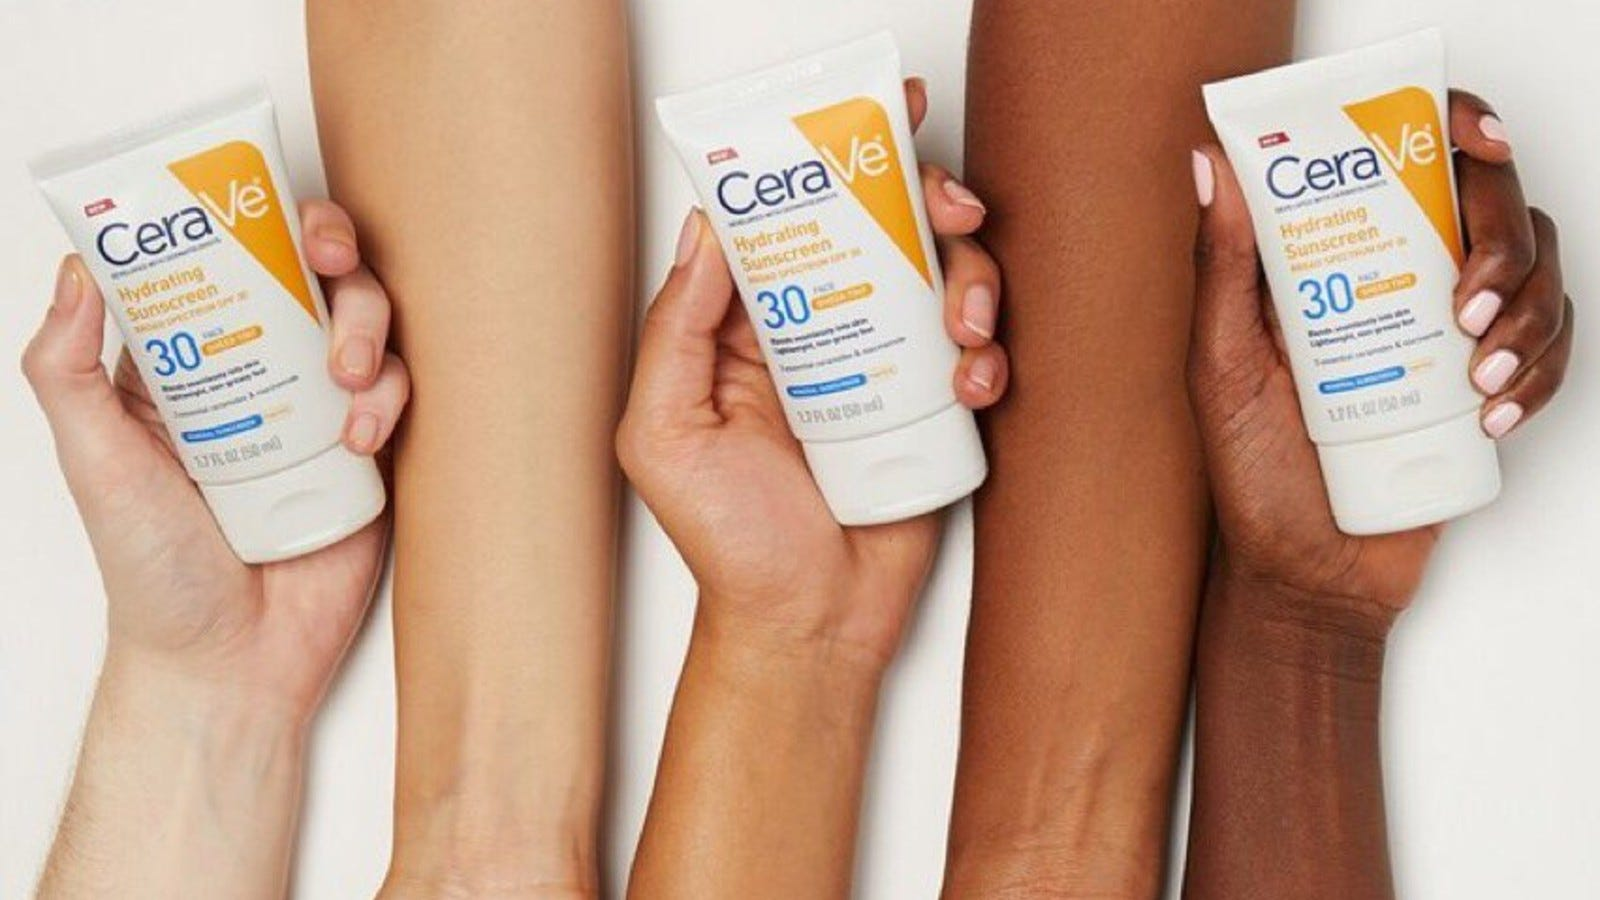 three hands in different skin tones holding Cerve sunscreen bottle